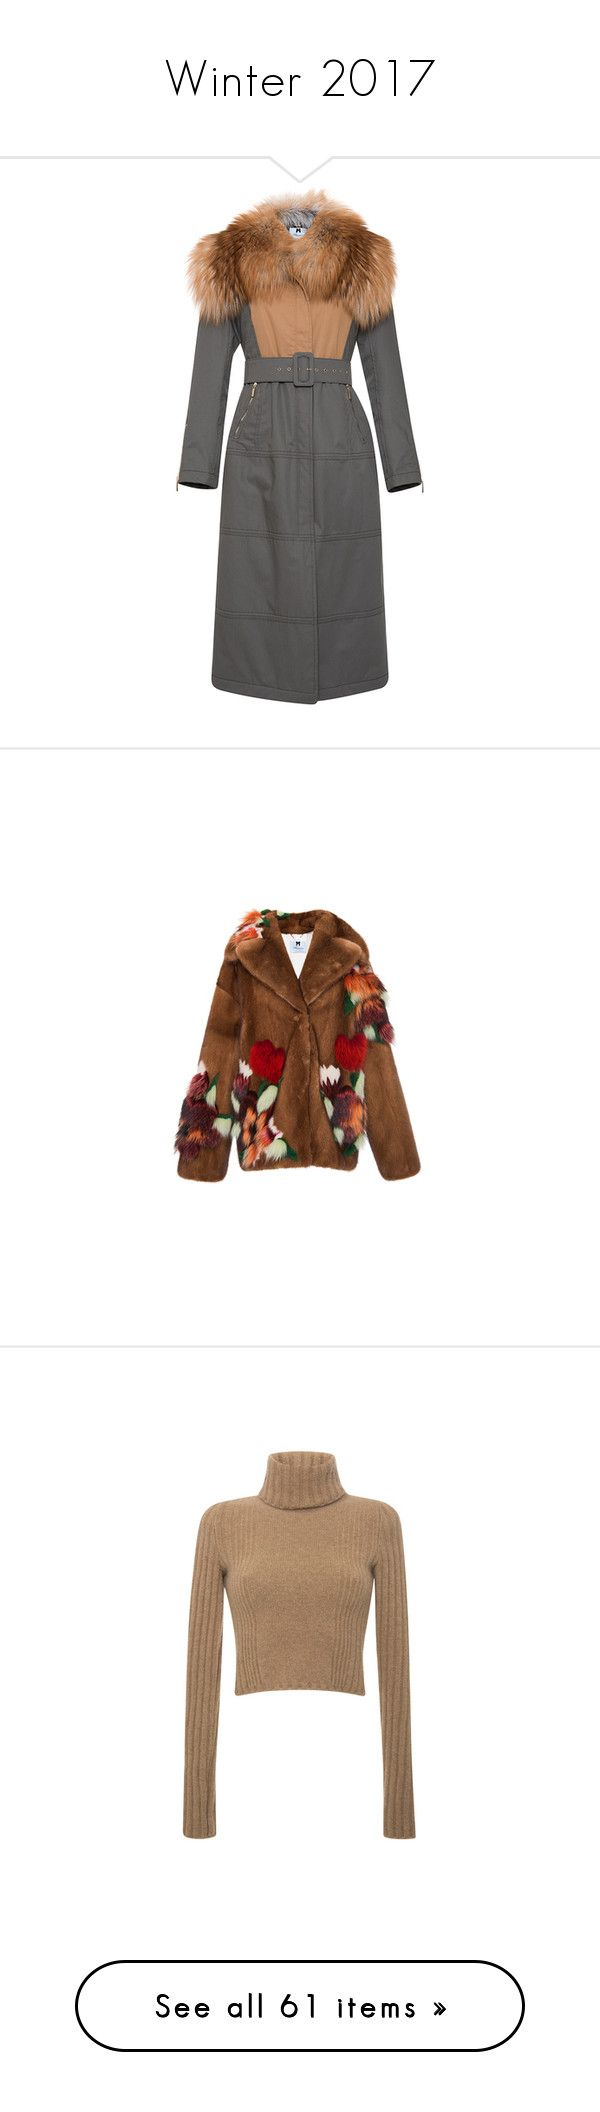 """Winter 2017"" by lorika-borika ❤ liked on Polyvore featuring outerwear, coats, belt coat, fur coat, blumarine, safari coat, blumarine coat, brown coat, floral coat and floral print coat"